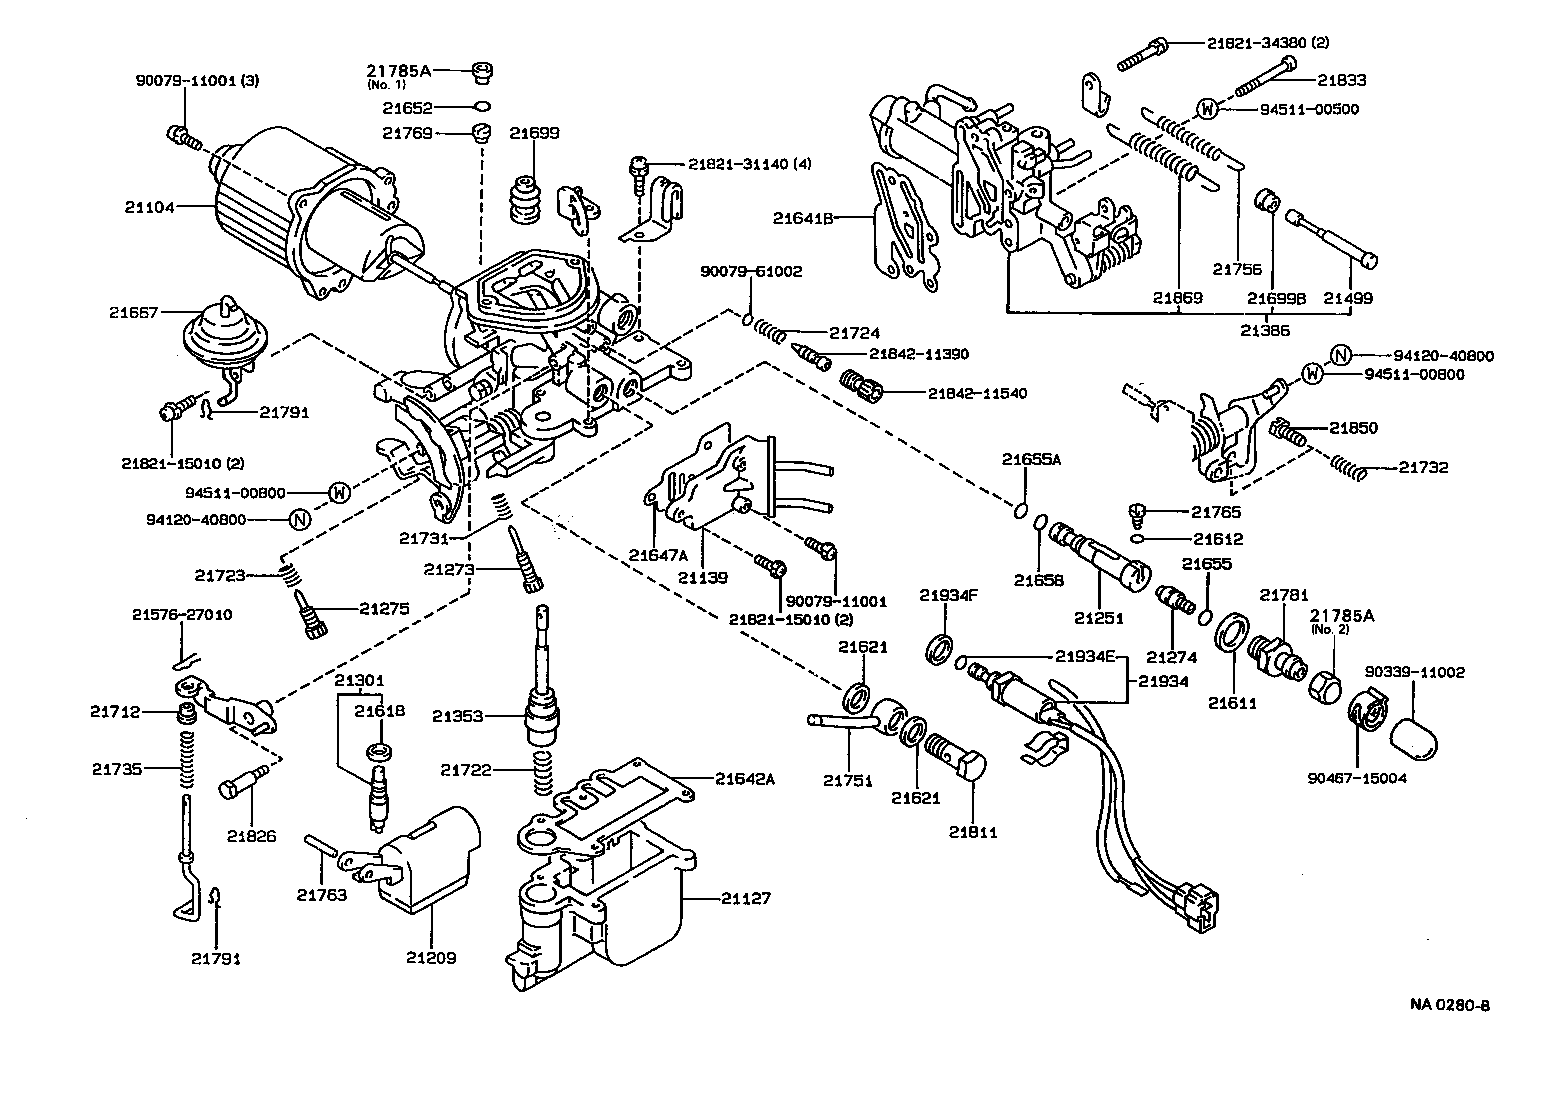 1989 Toyota Engine Parts Diagram Manual Guide Wiring Corolla Library Rh 10 Kaufmed De